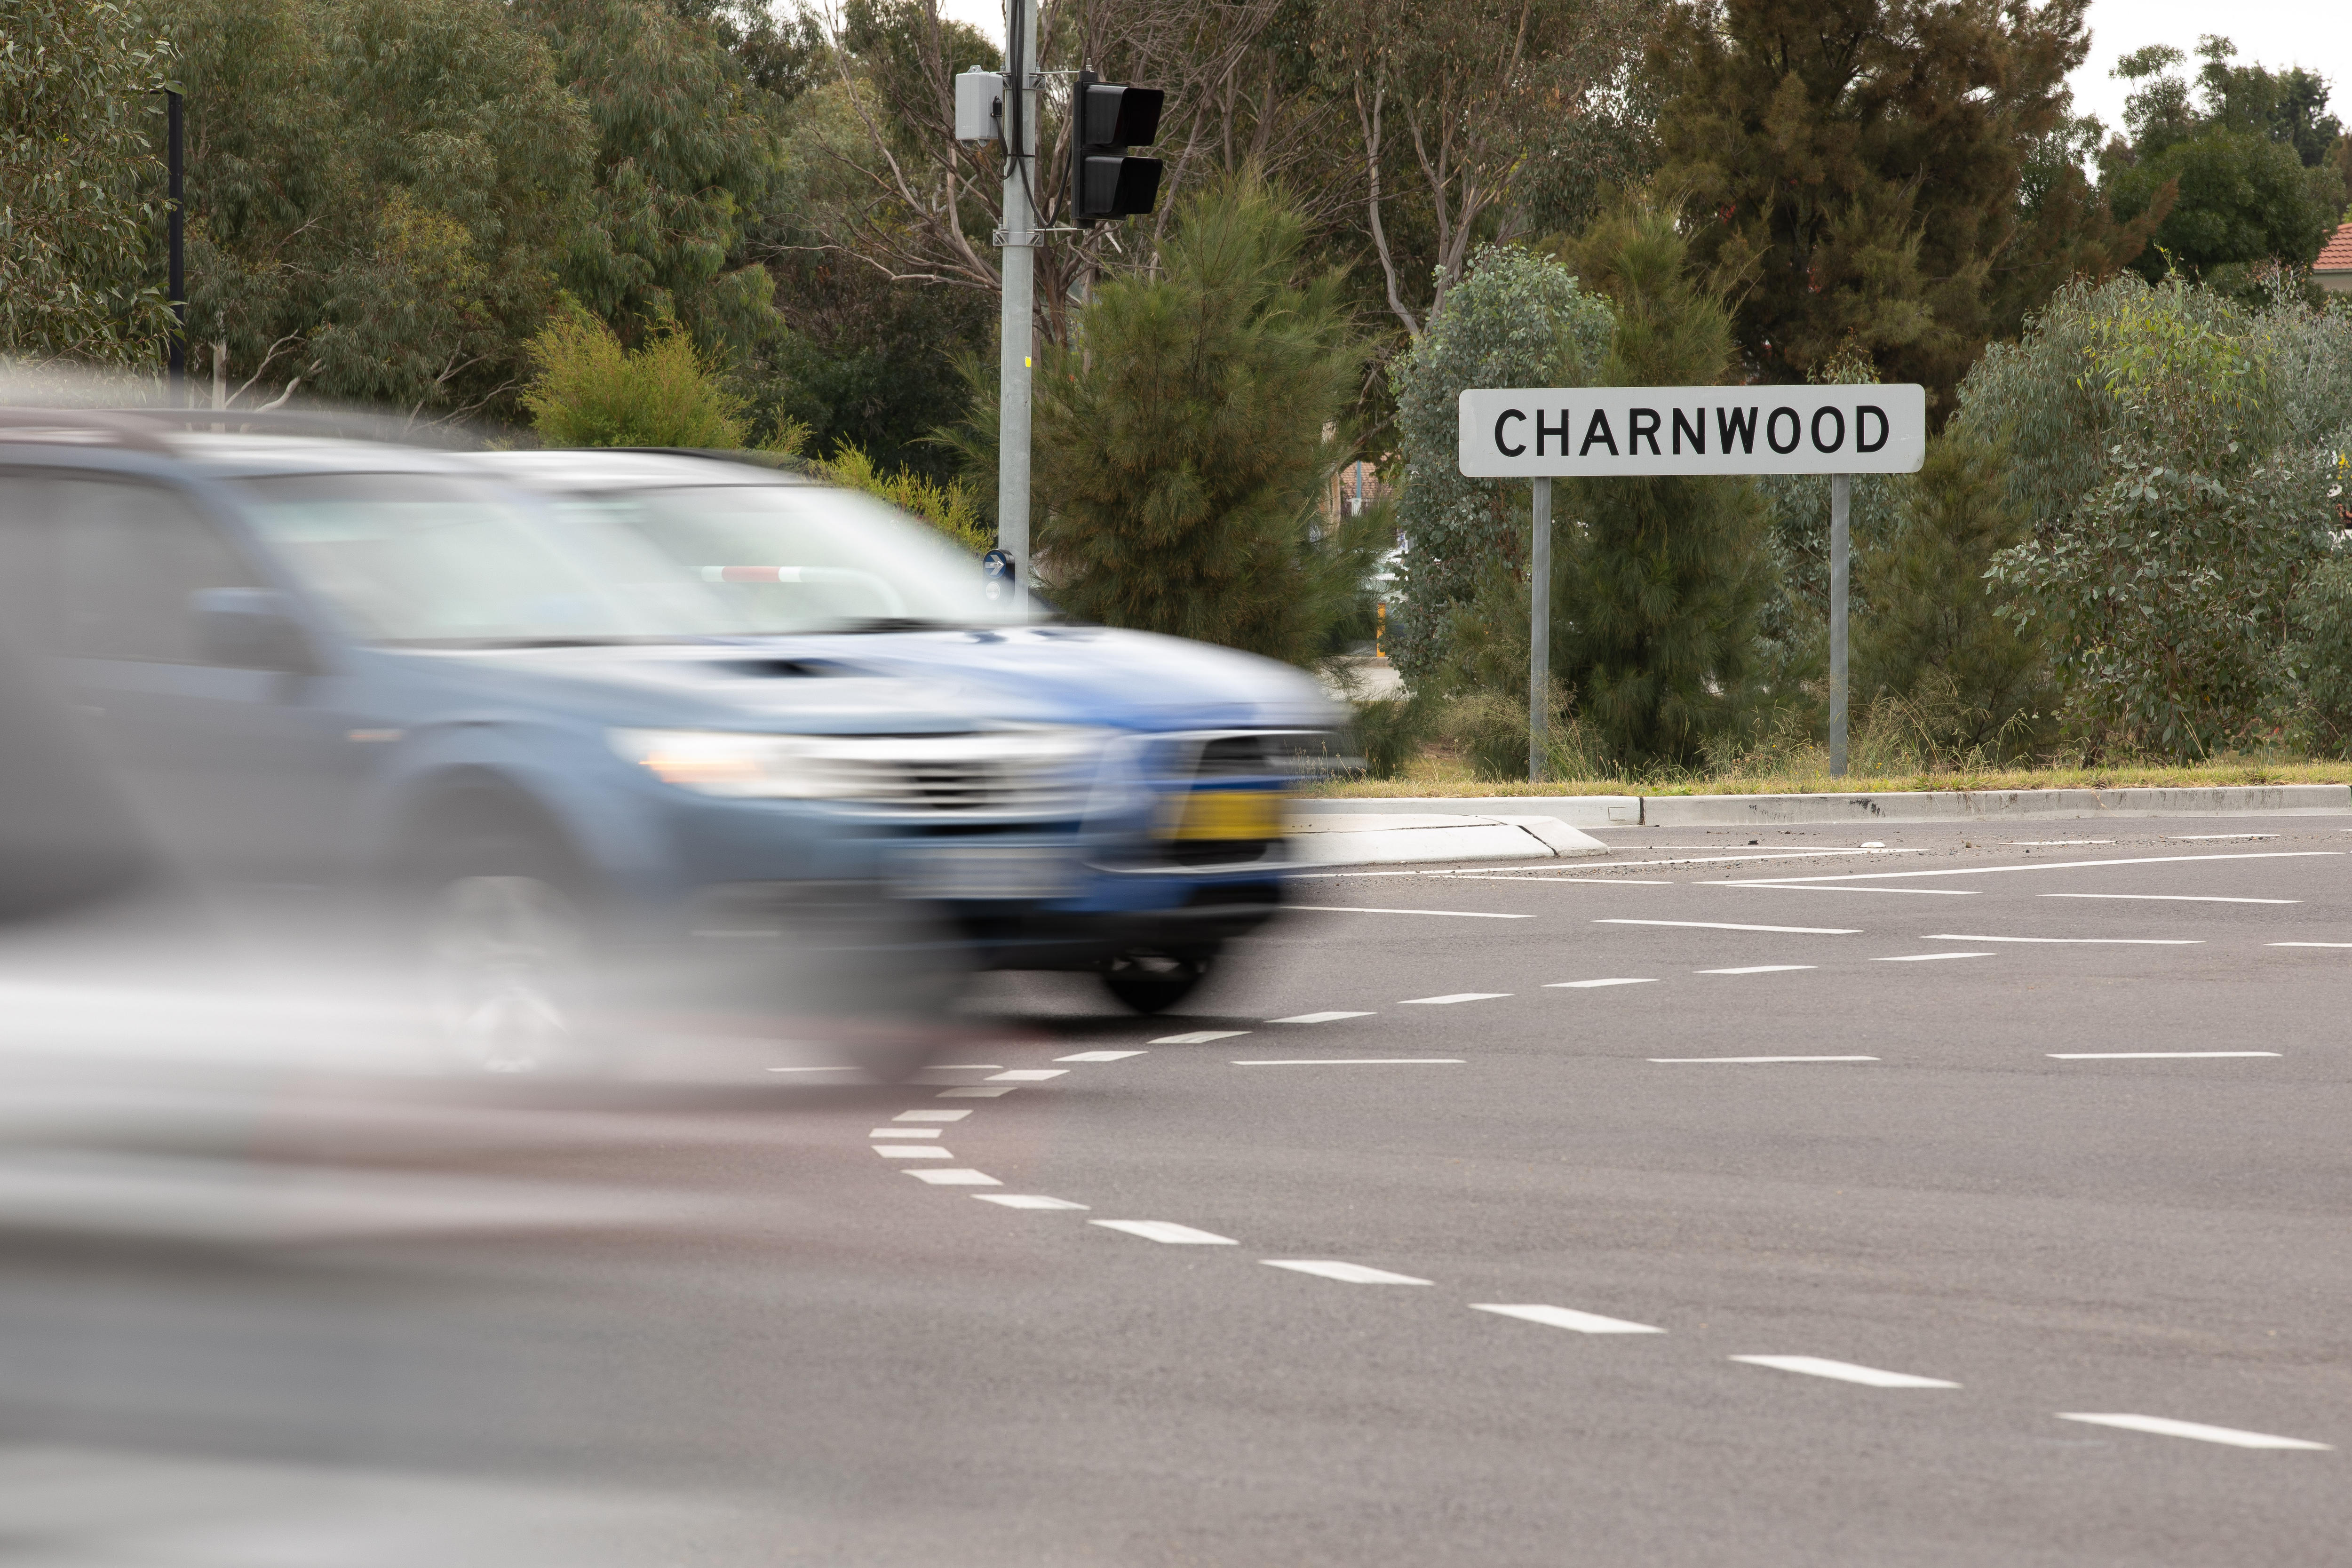 A grey car drives past a Charnwood sign.